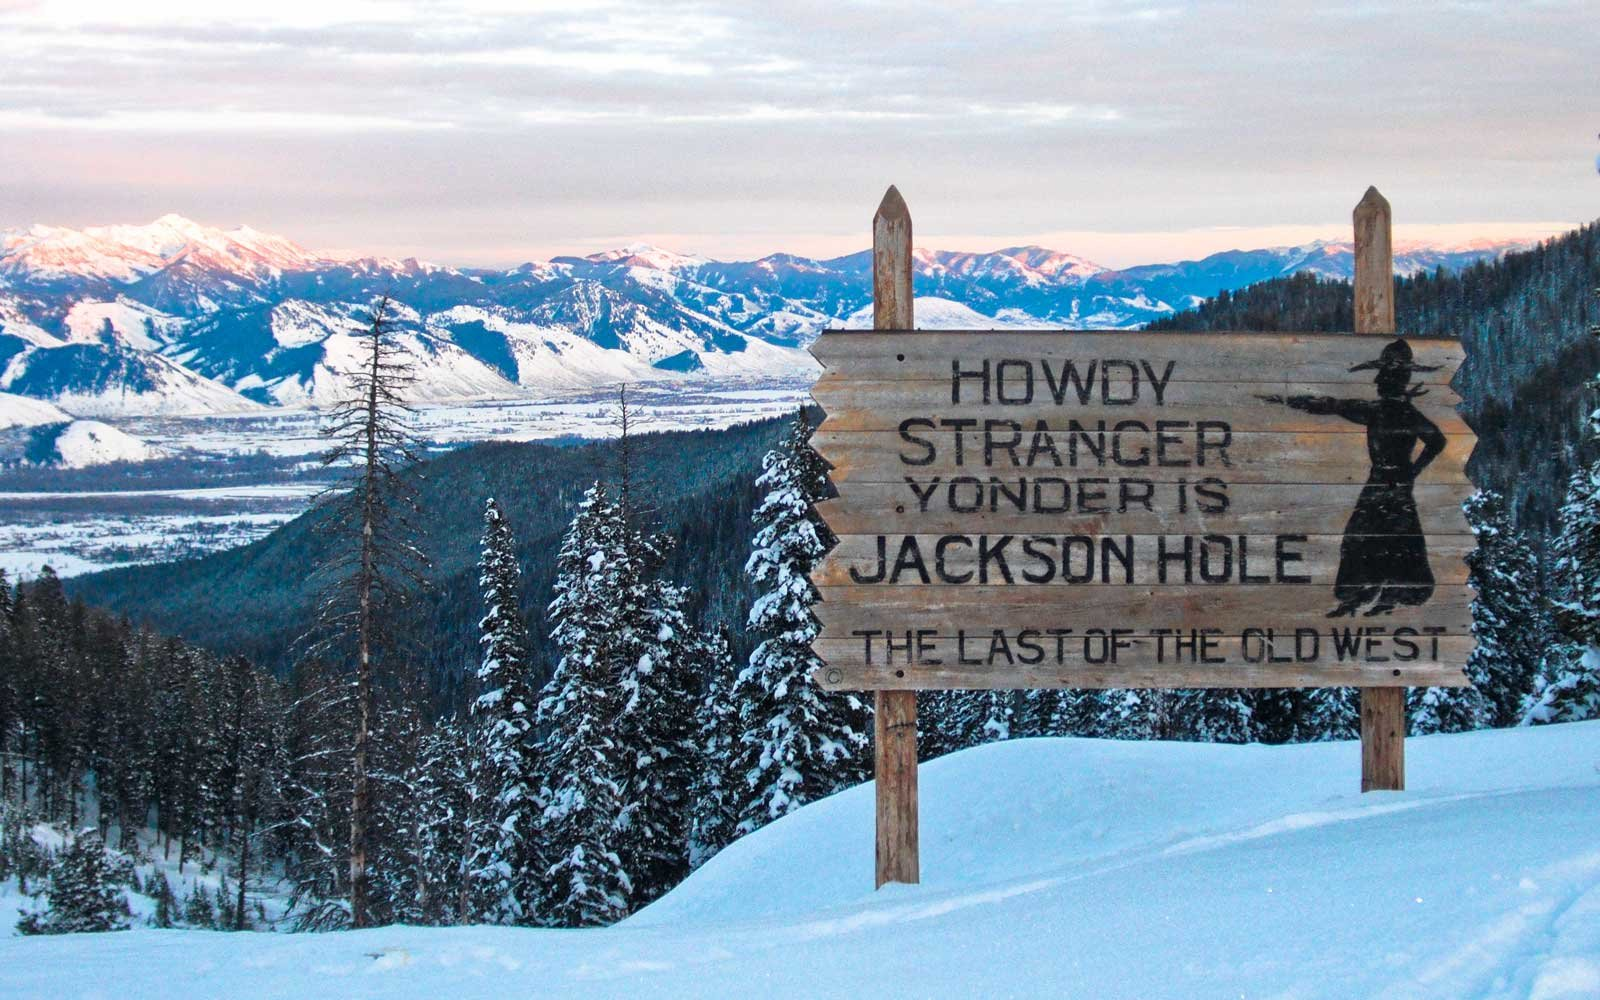 Welcome sign for Jackson Hole, Wyoming, in winter